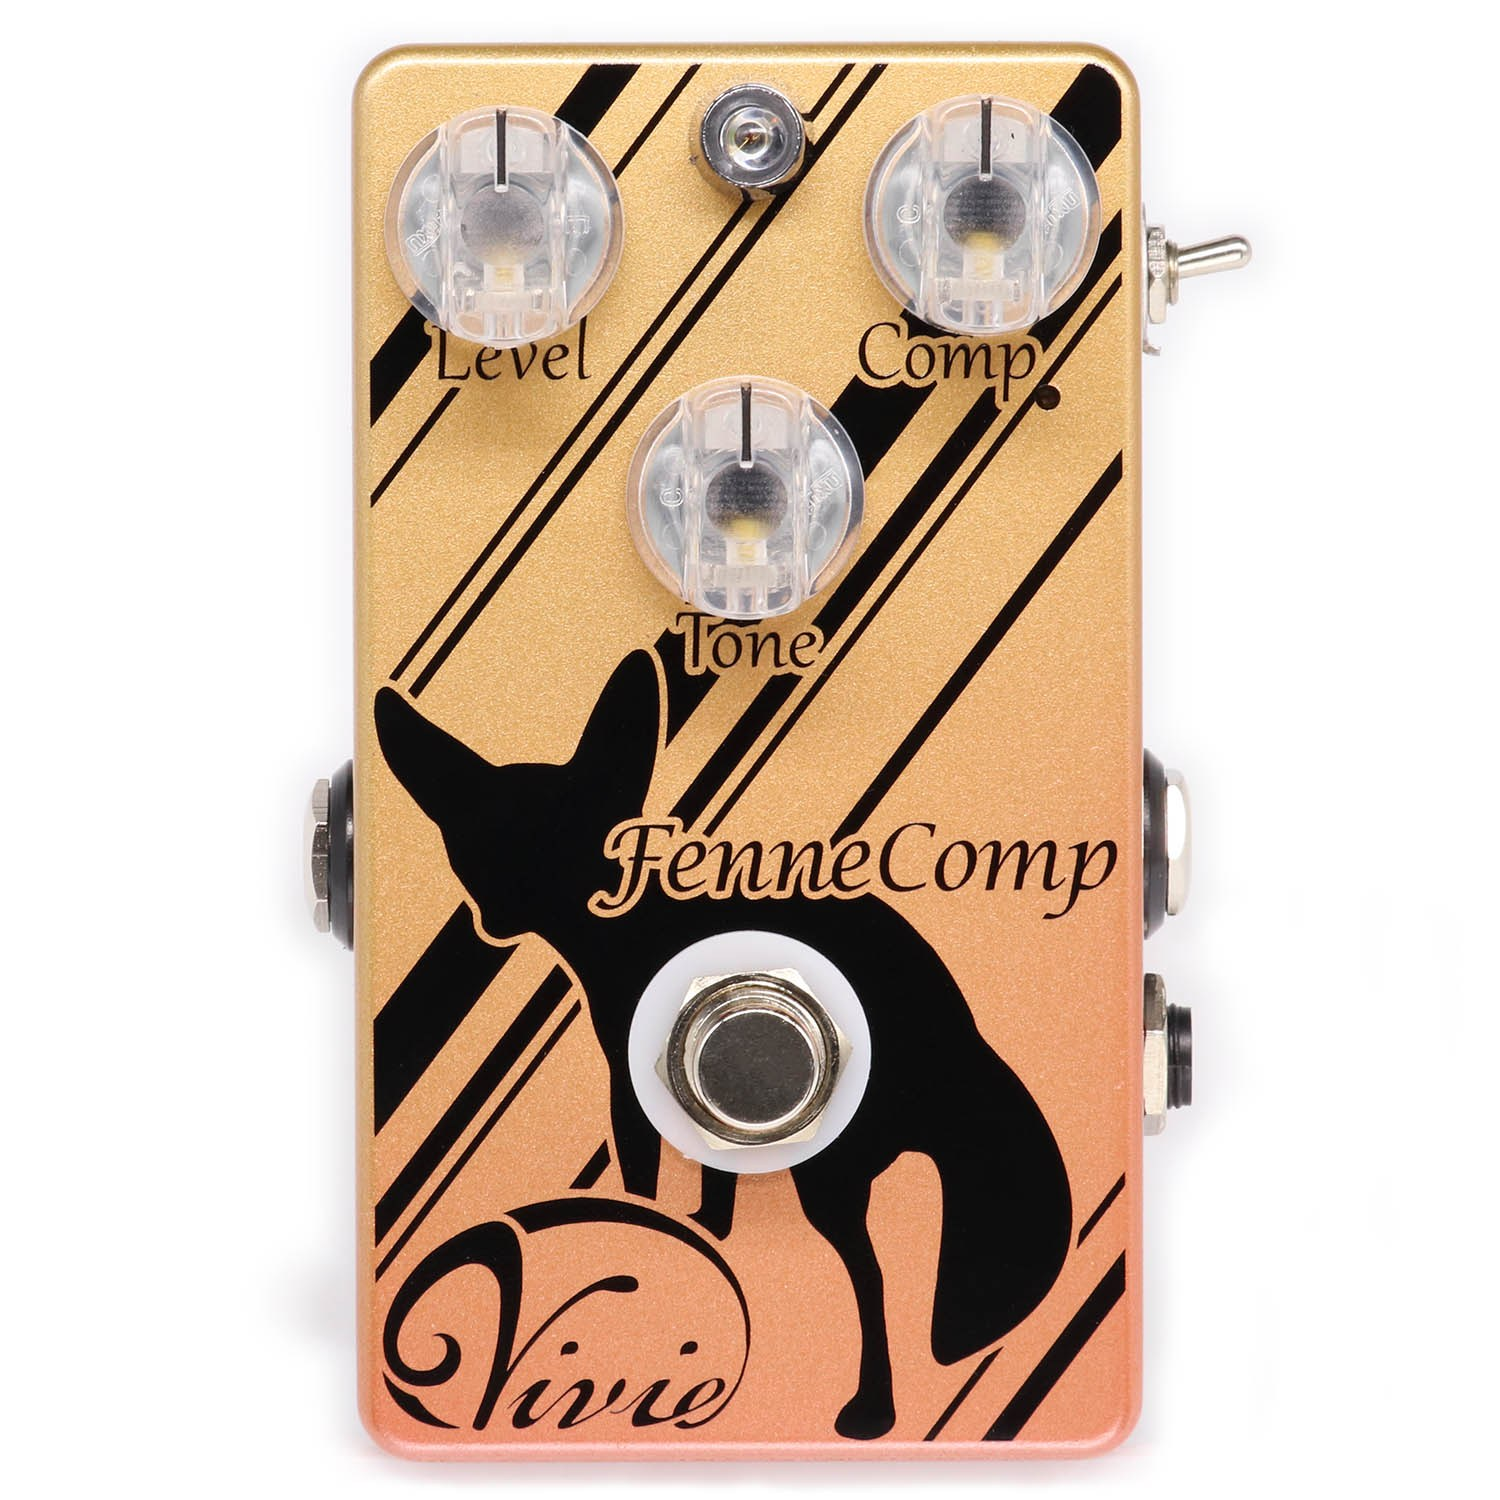 VIVIE - FenneComp (BASS Compressor)